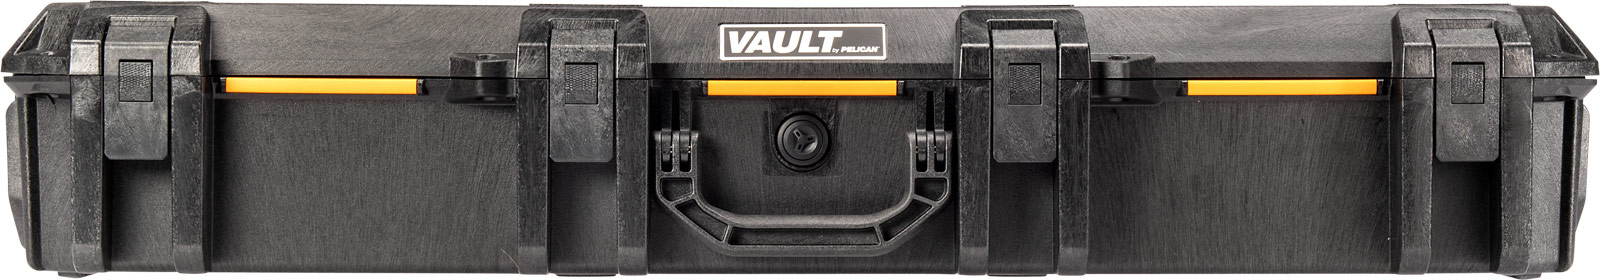 buy pelican vault v730 shop tactical rifle case